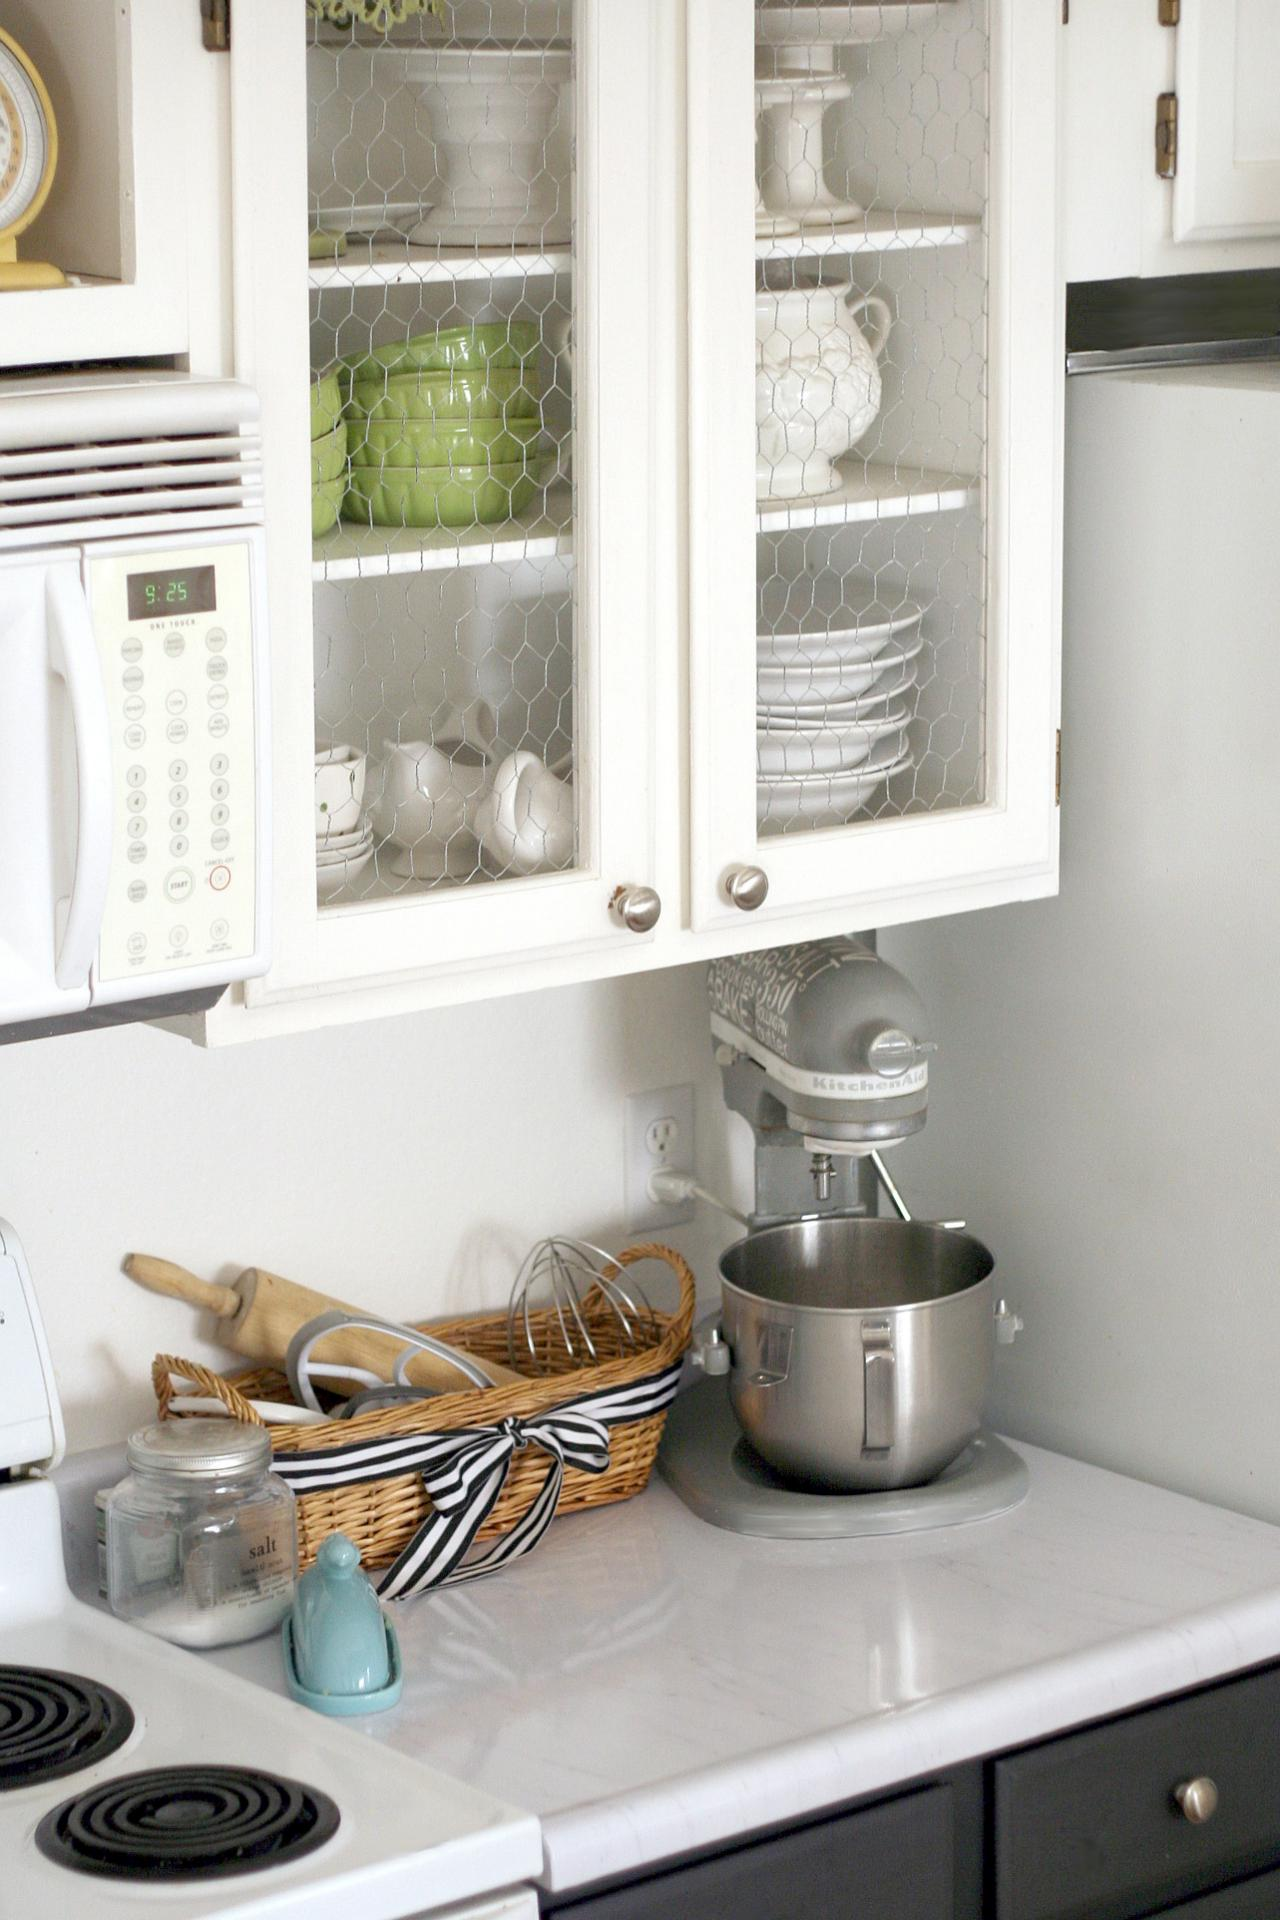 Comment renover une cuisine comment rnover sa cuisine for Relooker armoire cuisine